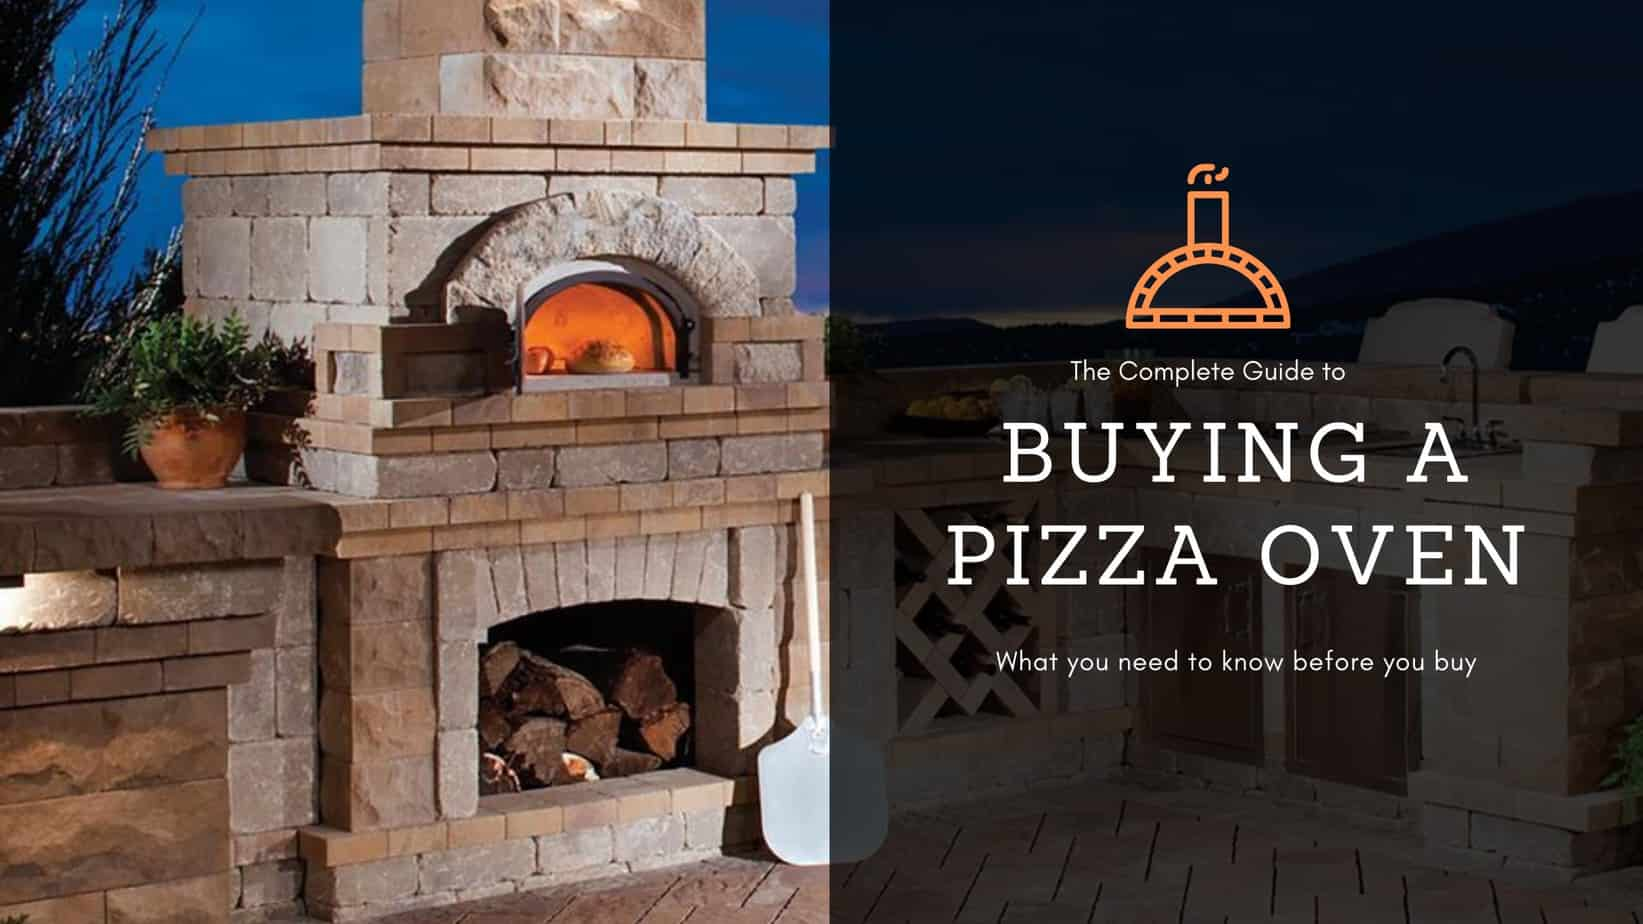 guide to buying a pizza oven image